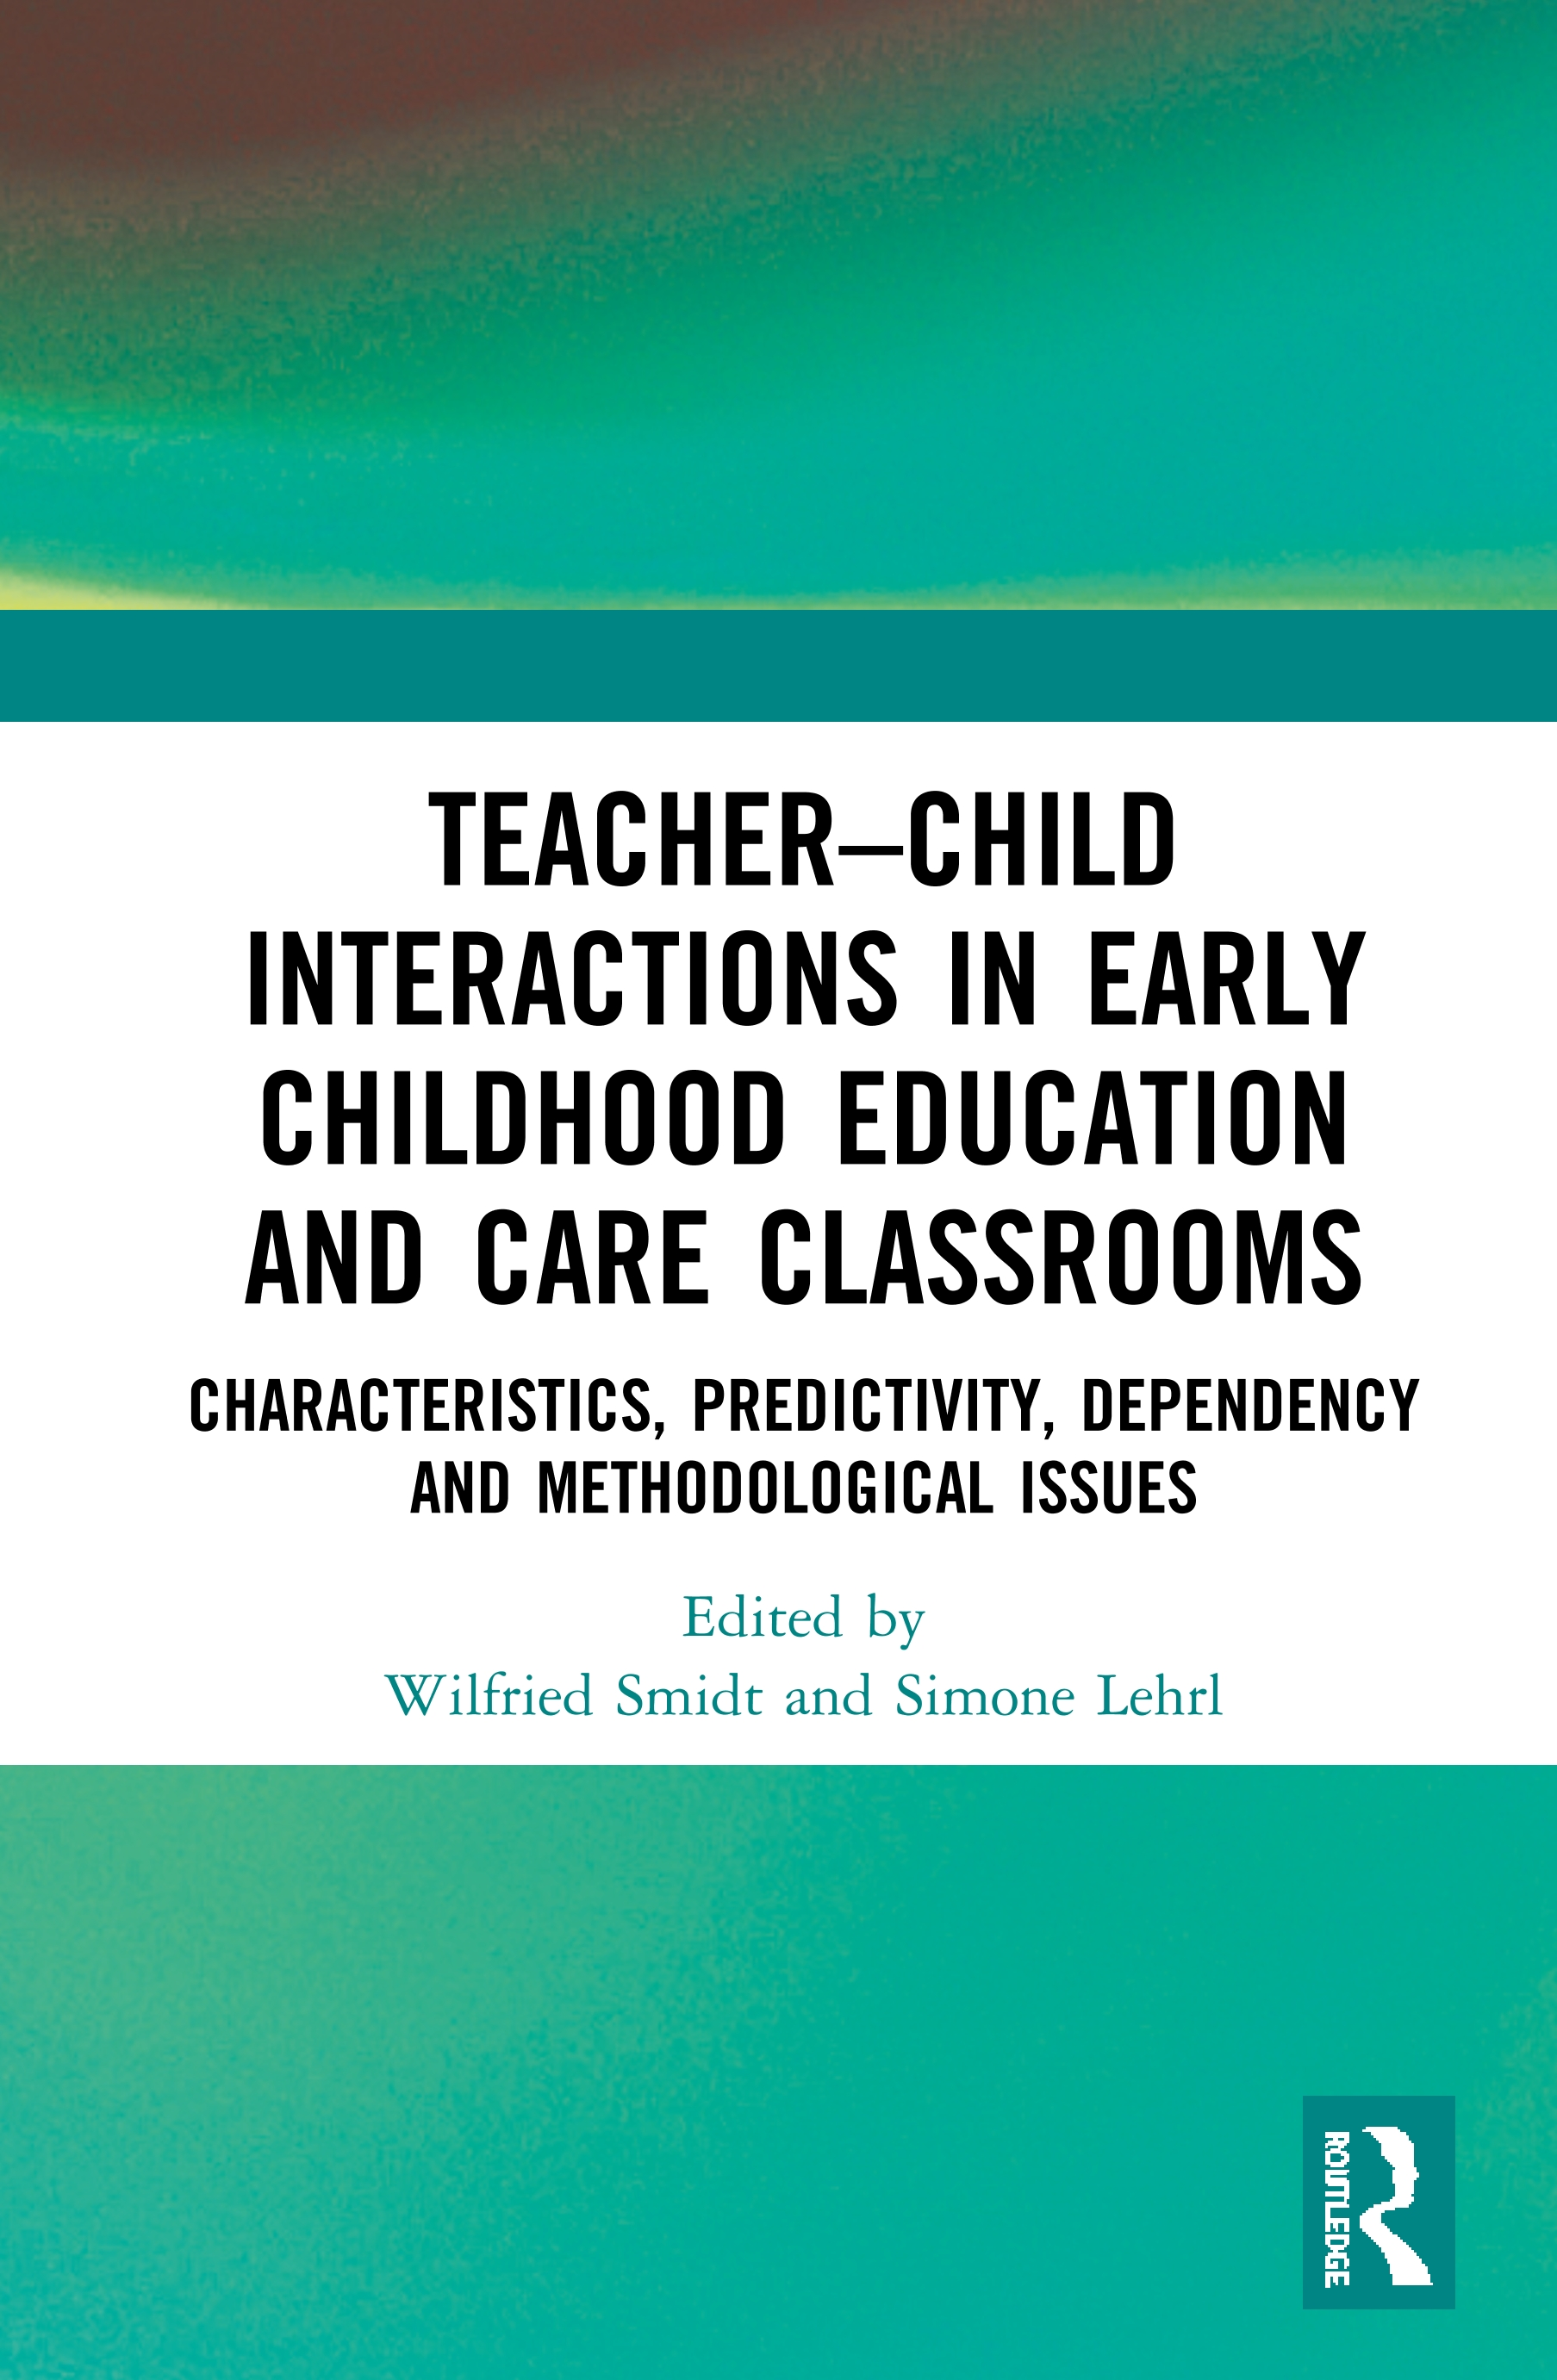 Teacher–Child Interactions in Early Childhood Education and Care Classrooms: Characteristics, Predictivity, Dependency and Methodological Issues, 1st Edition (Hardback) book cover